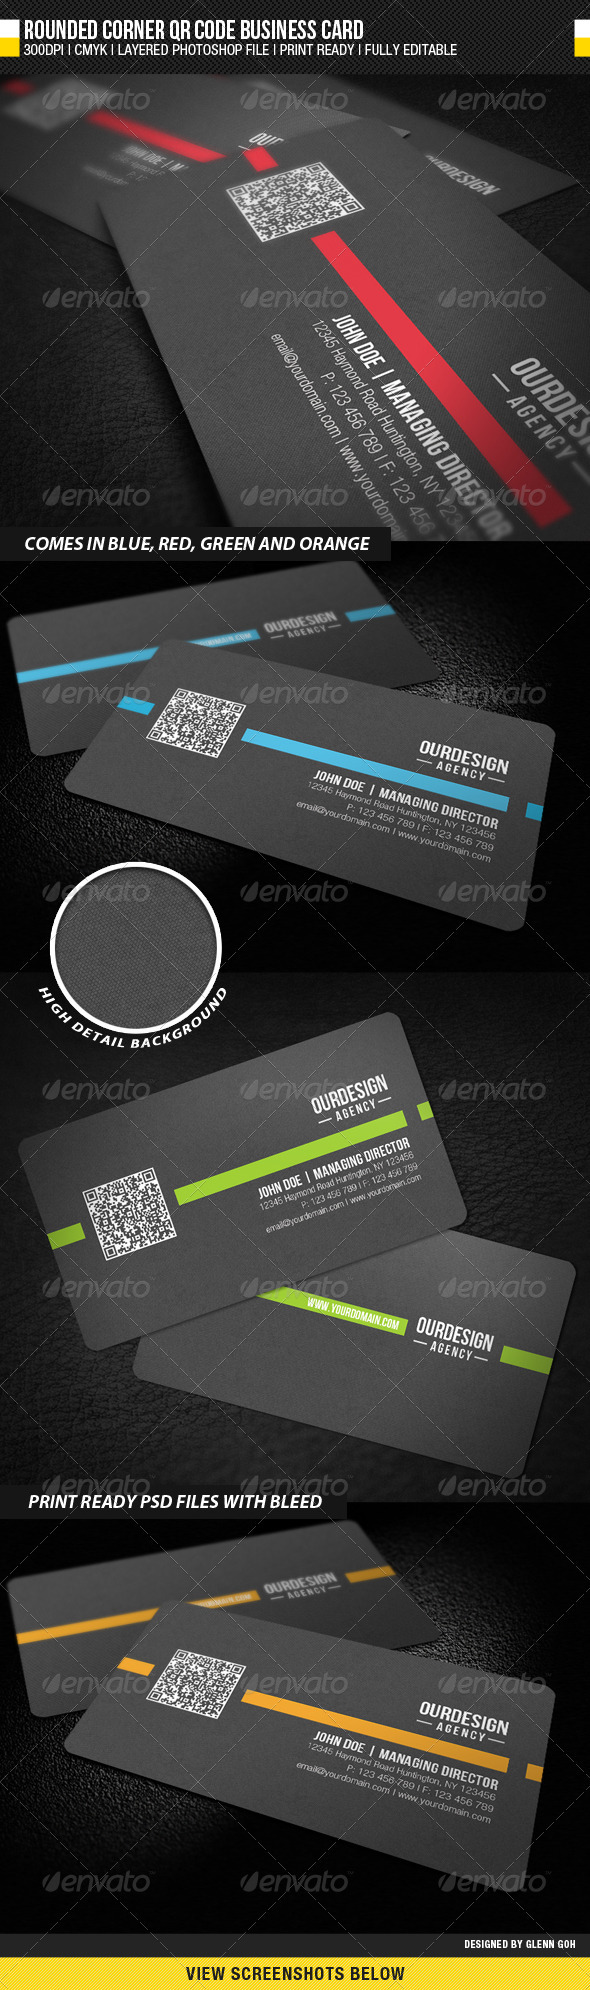 Rounded Corner QR Code Business Card - Corporate Business Cards